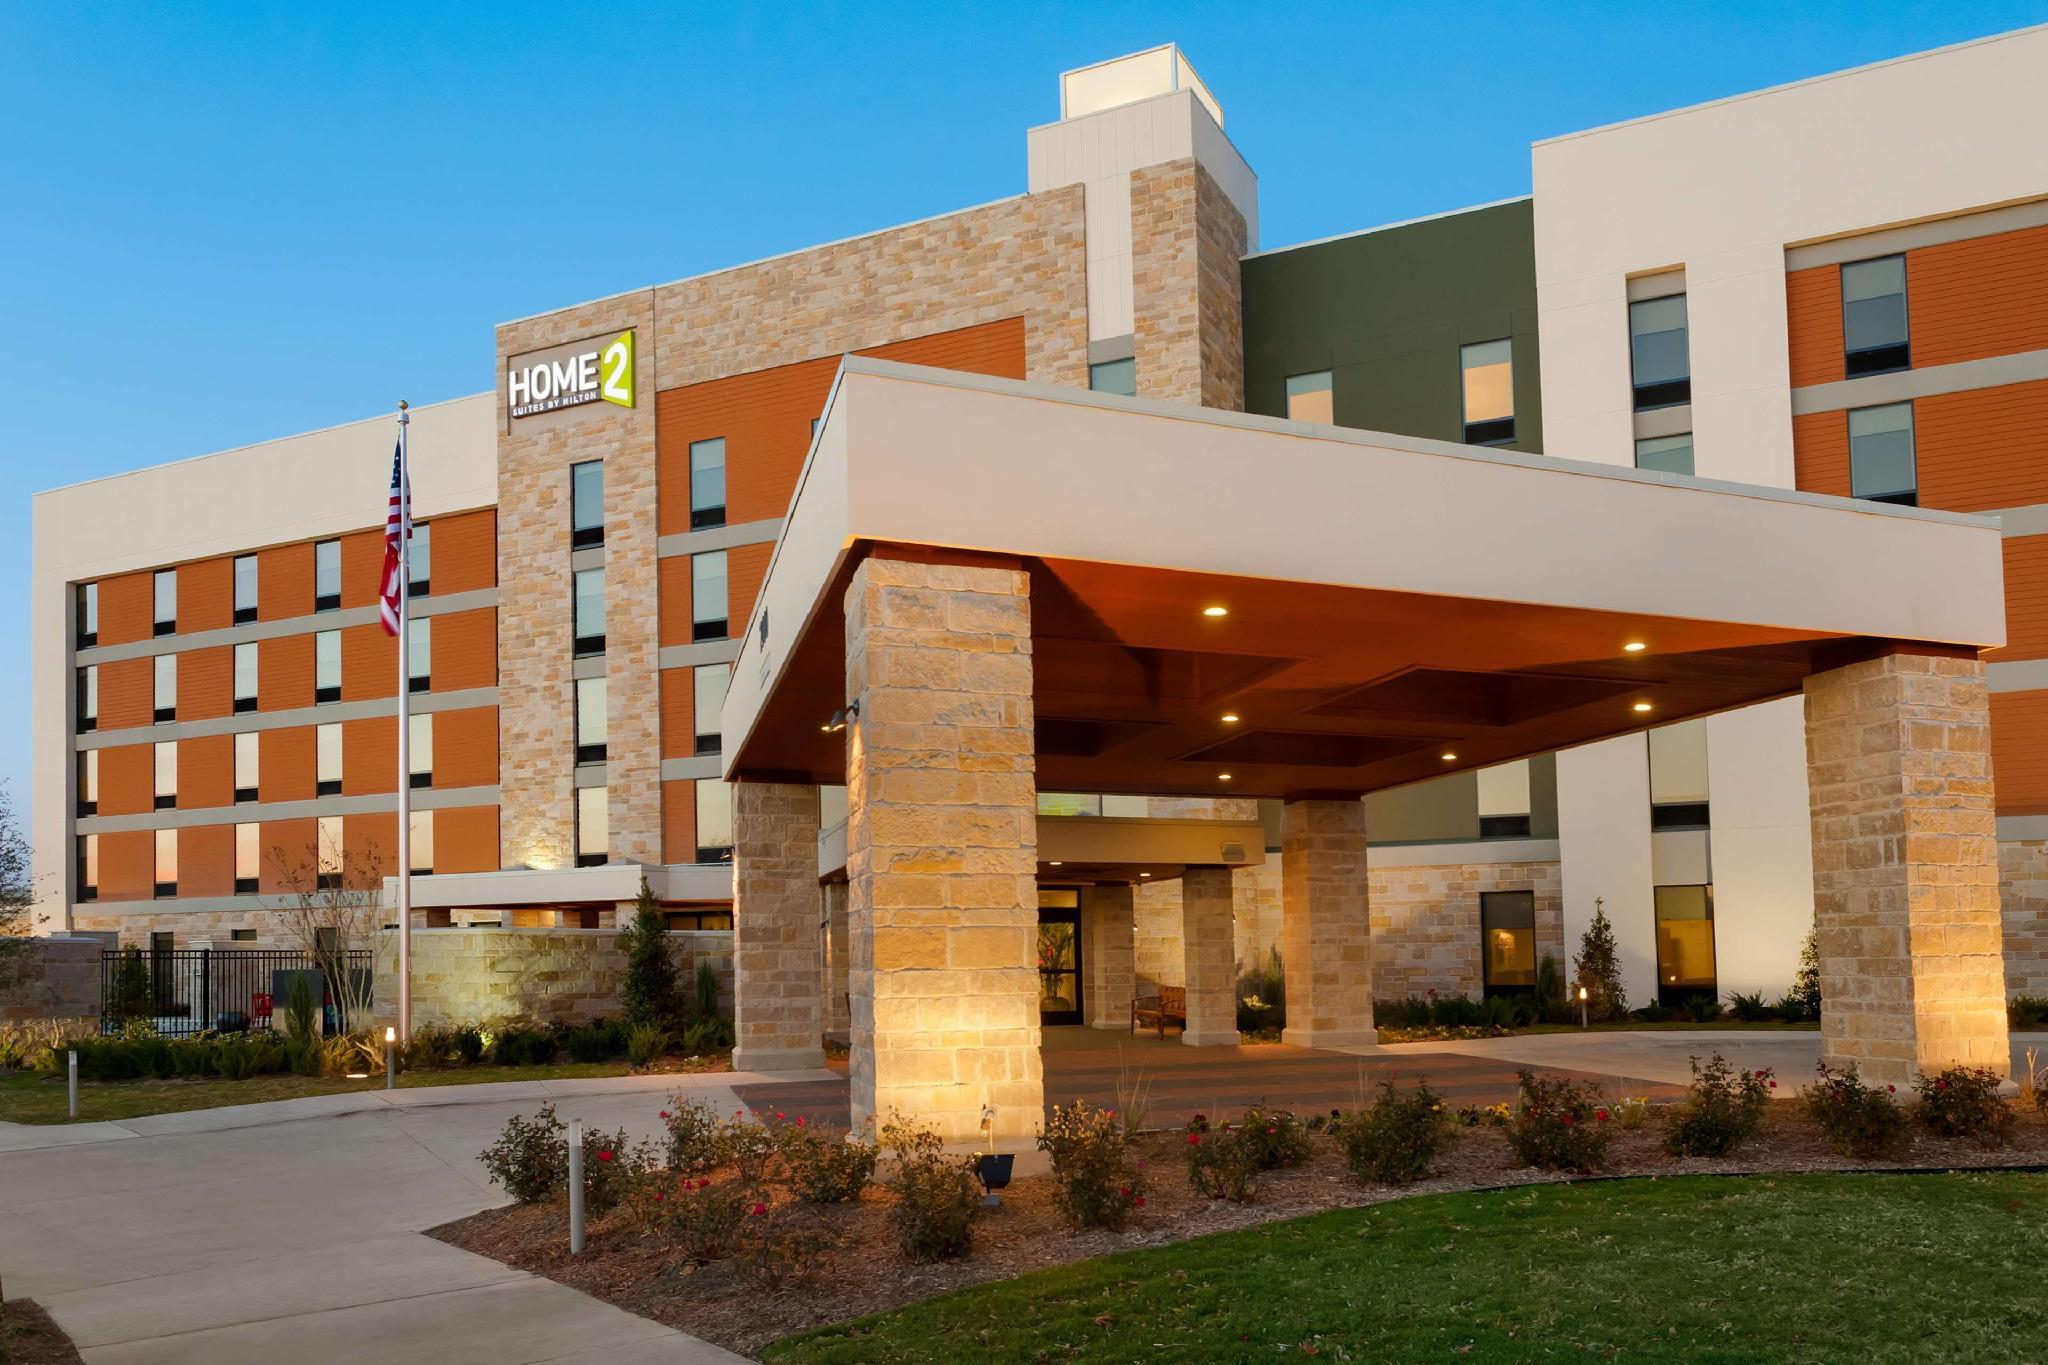 Home2 Suites By Hilton Dallas Downtown At Baylor Scott And White